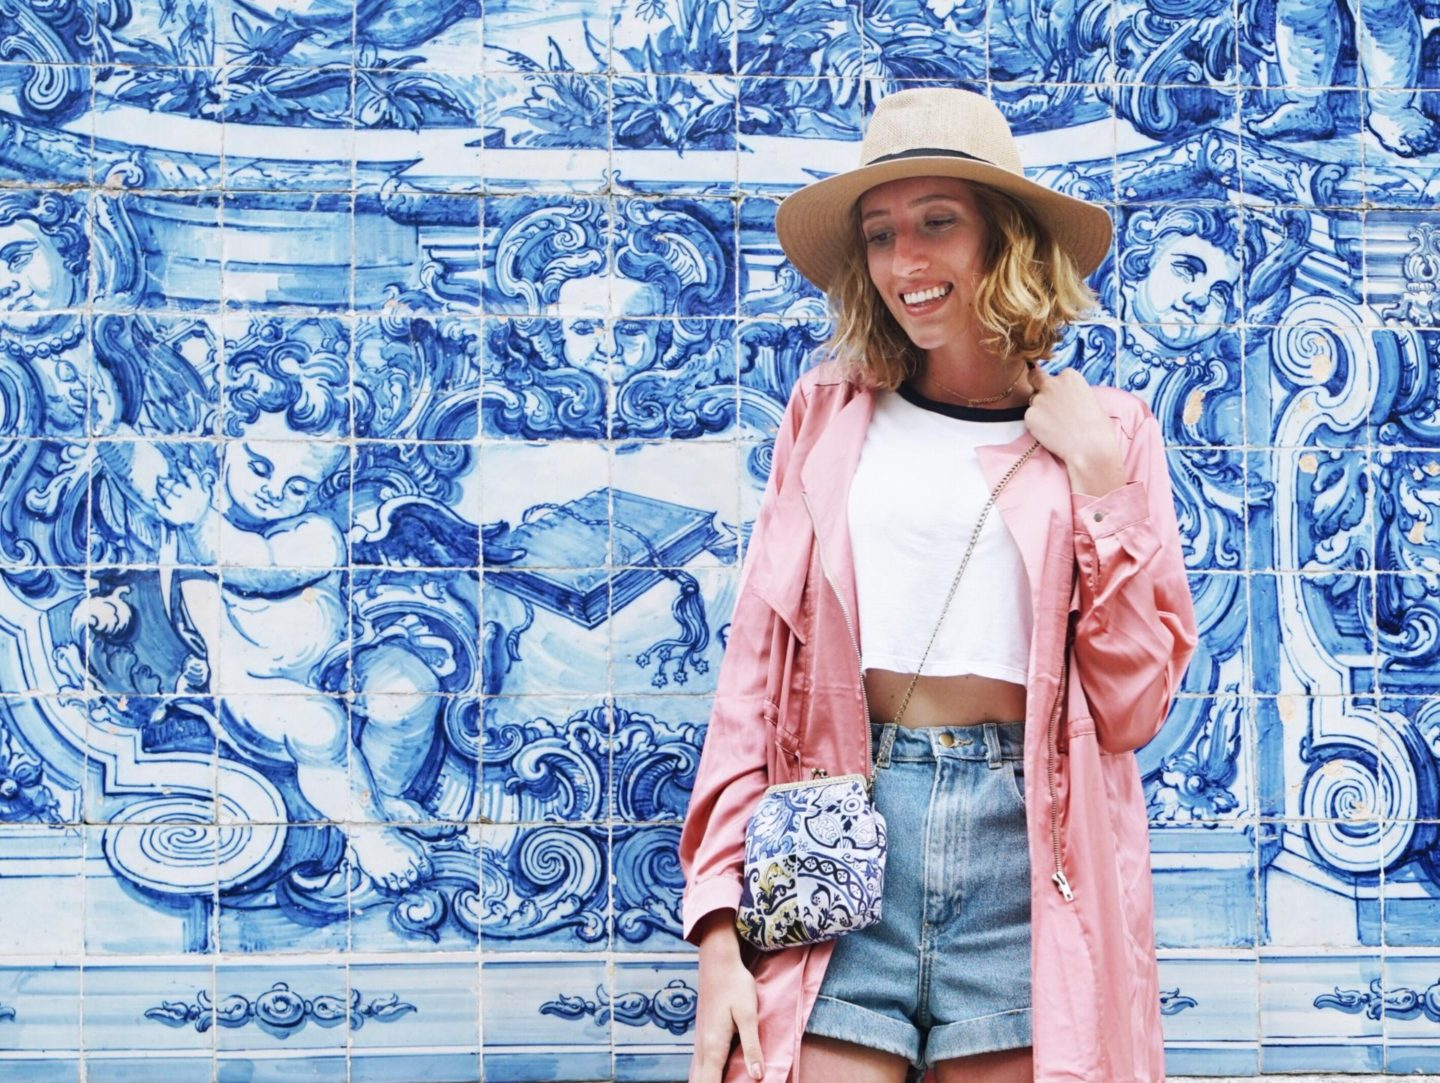 OOTD | Inspiration Drawn From Portuguese Art